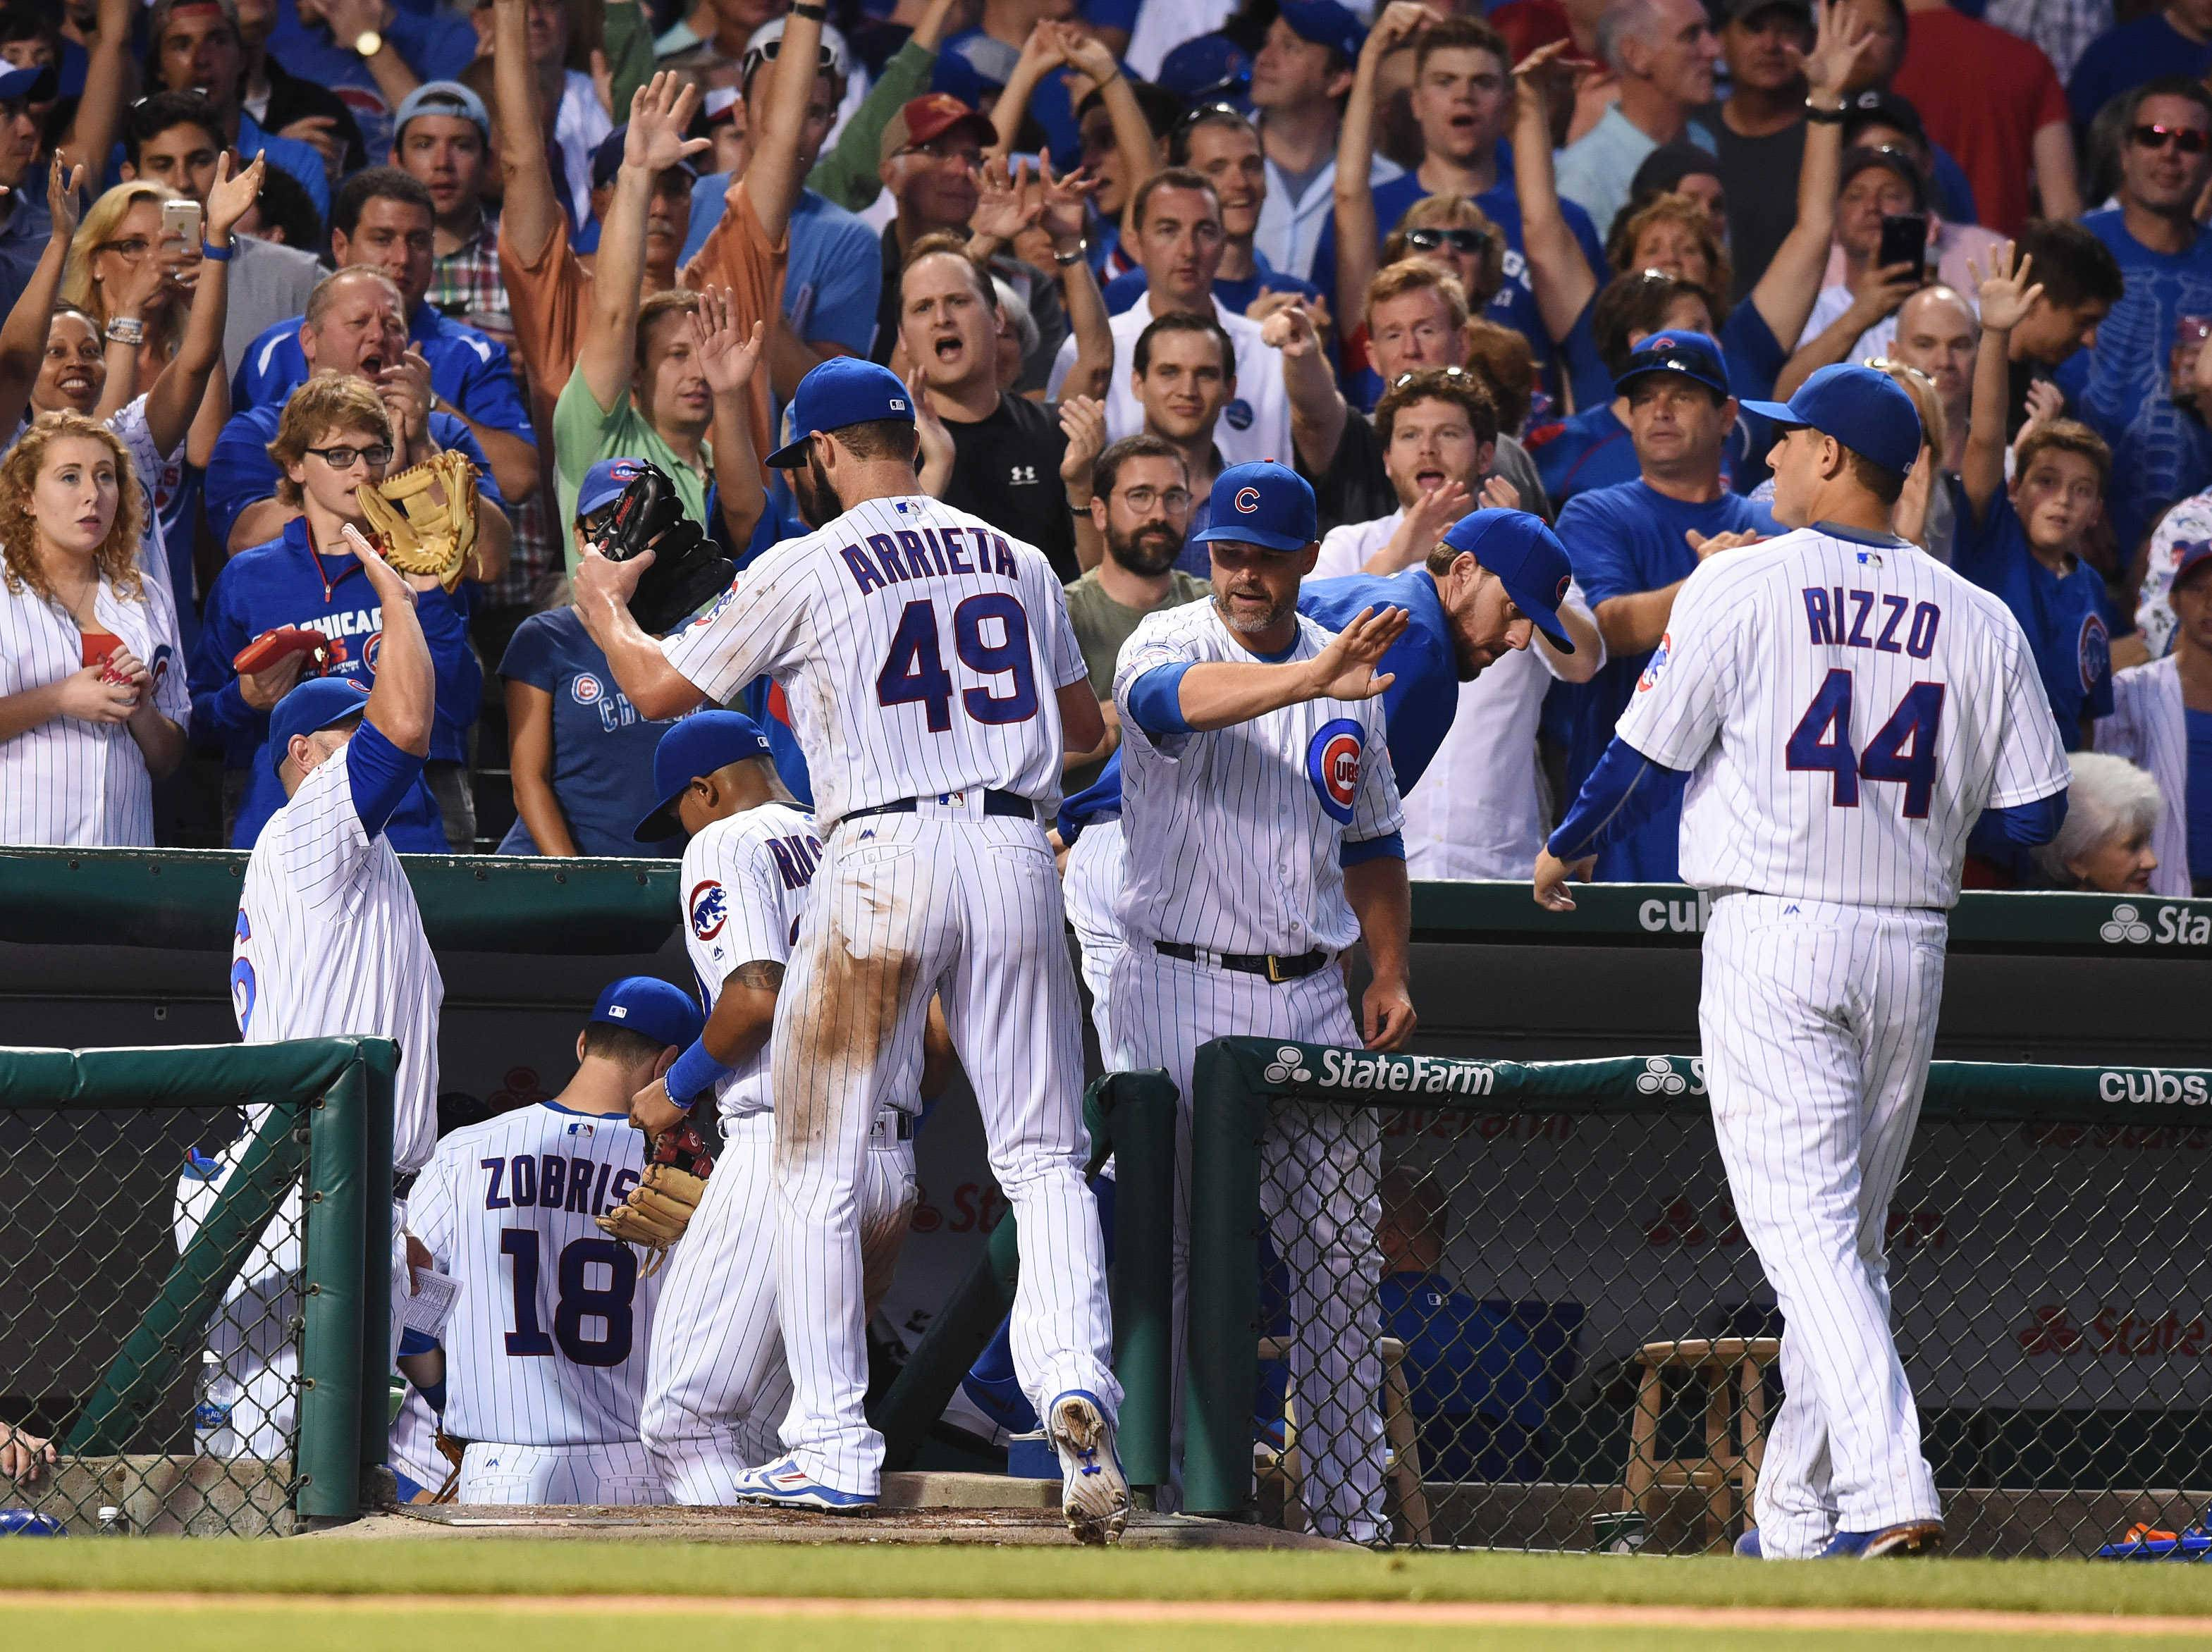 Otto: Arrieta's gem against Mets off the charts